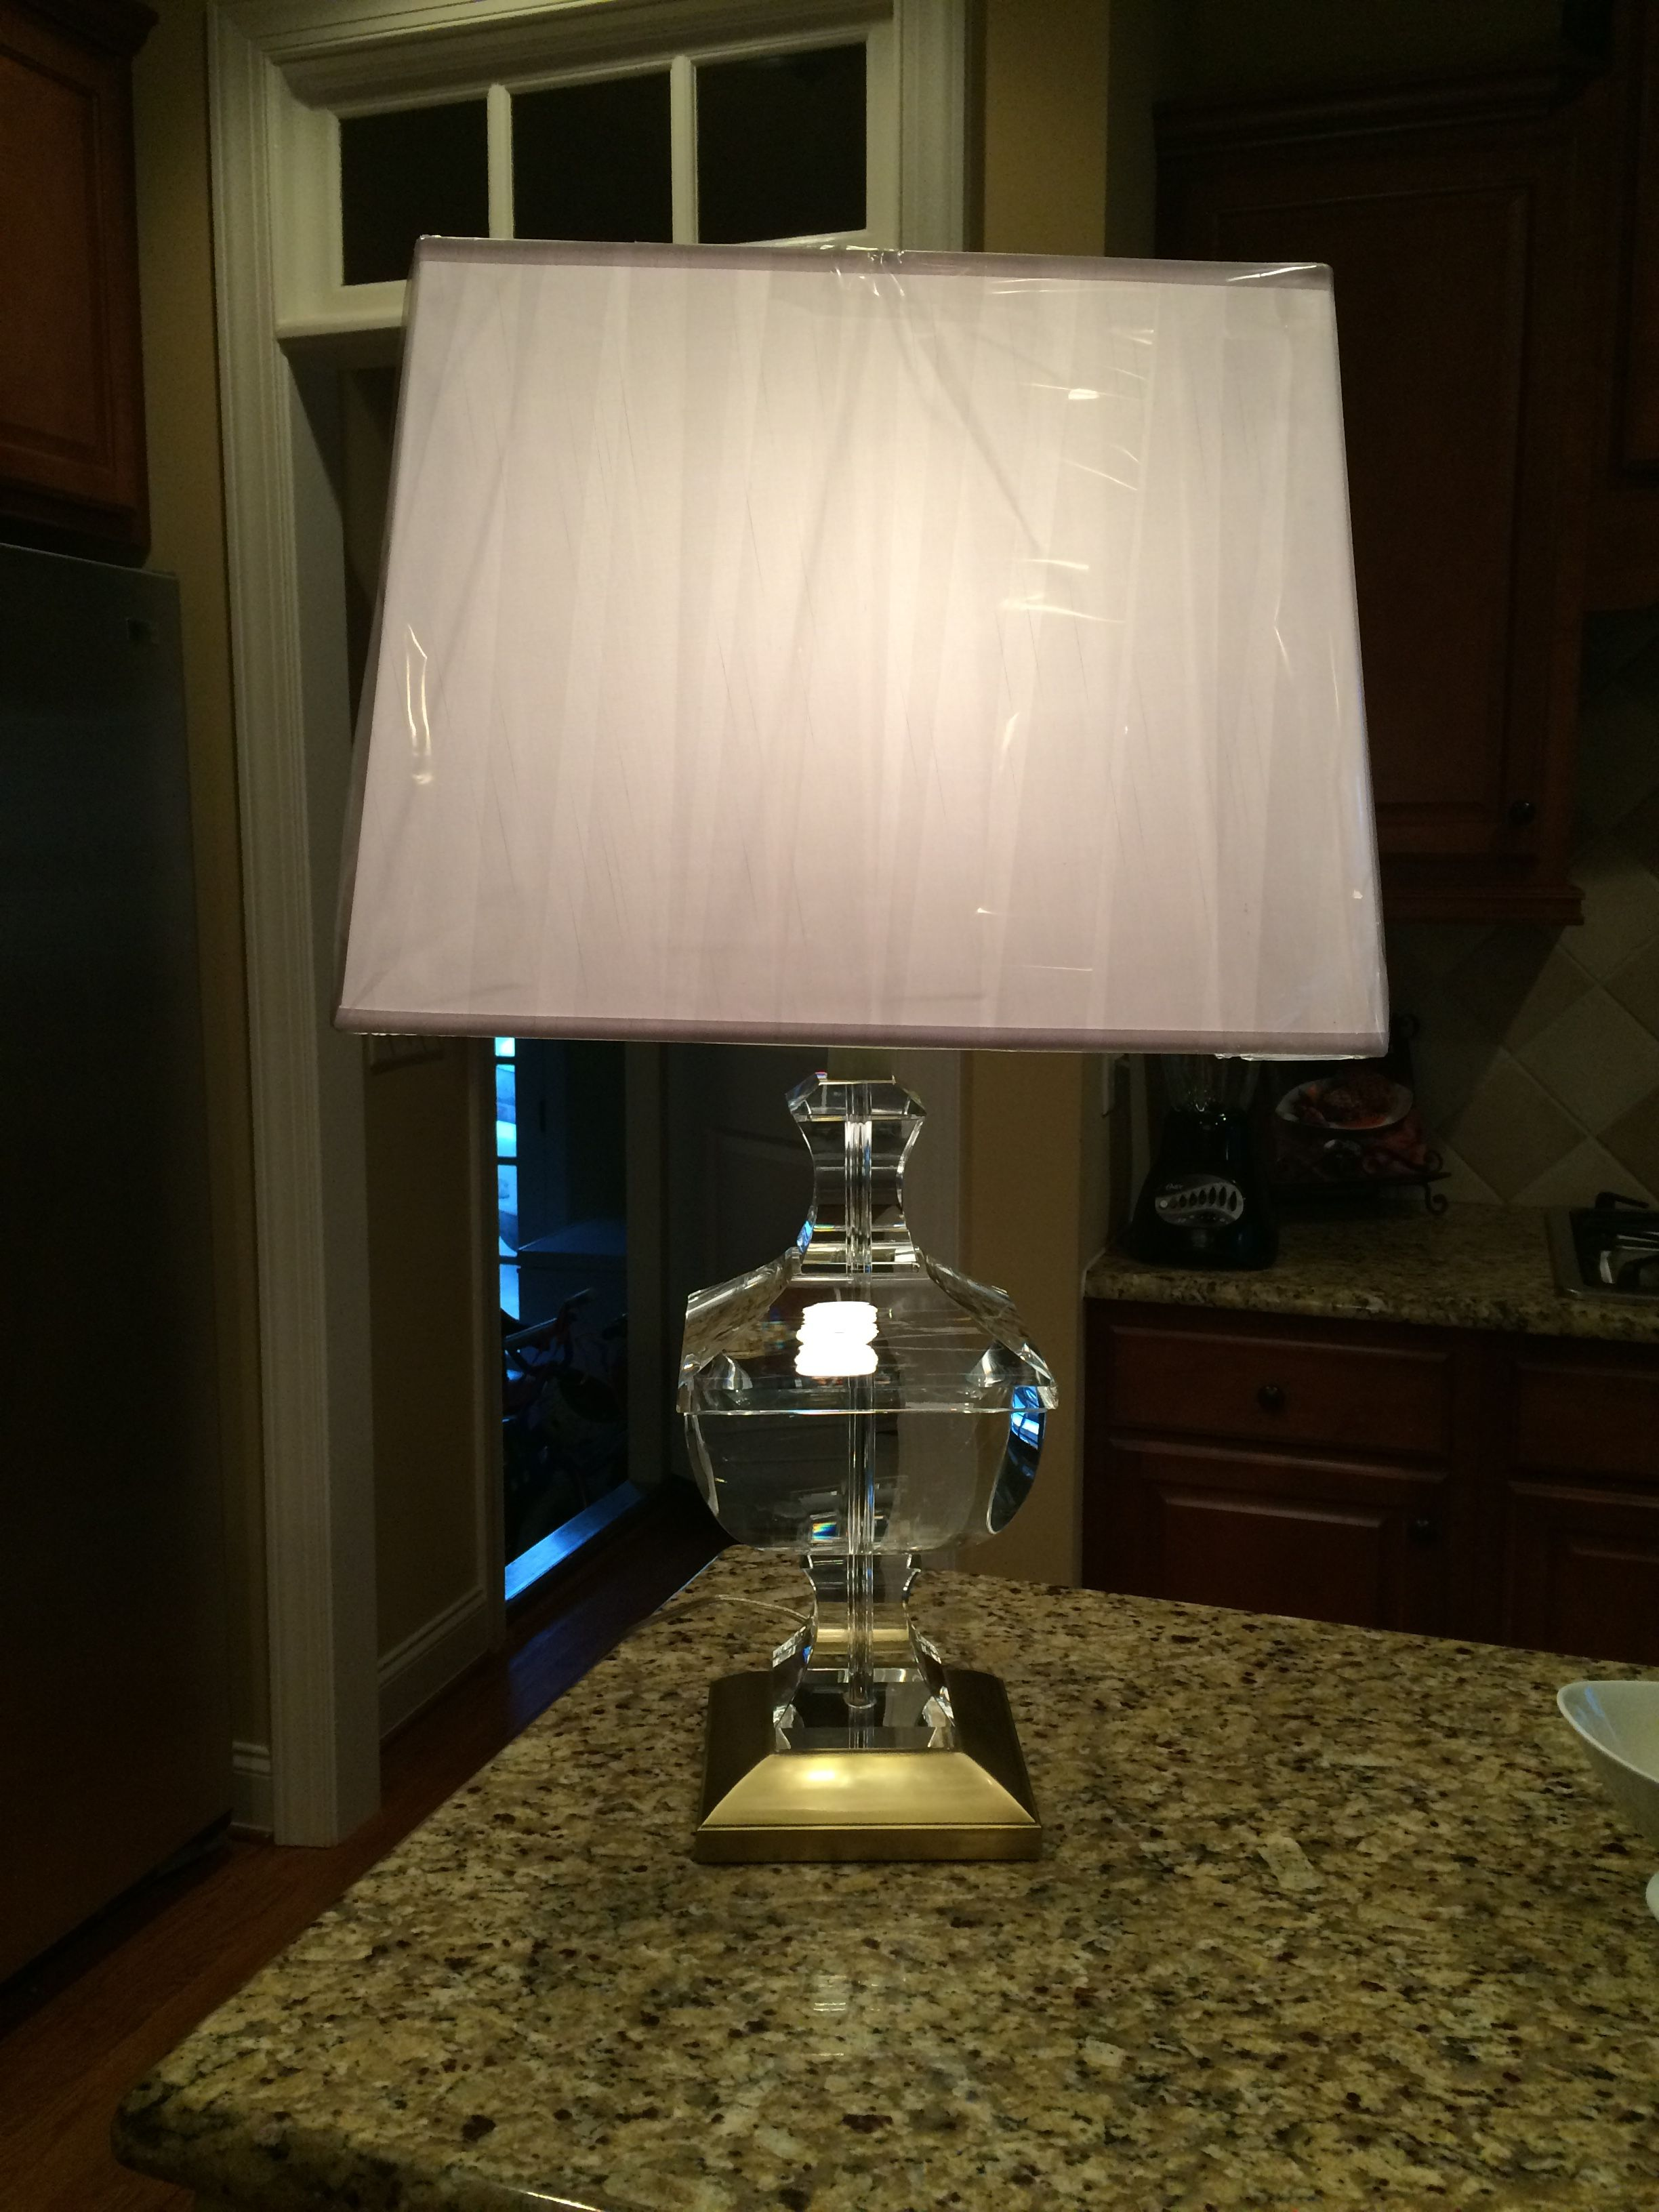 I Won This Hudson Valley Lighting Lamp At A Designer Event Tonight At Lights Unlimited In Garner Nc Hudson Valley Lighting Lamp Lighting